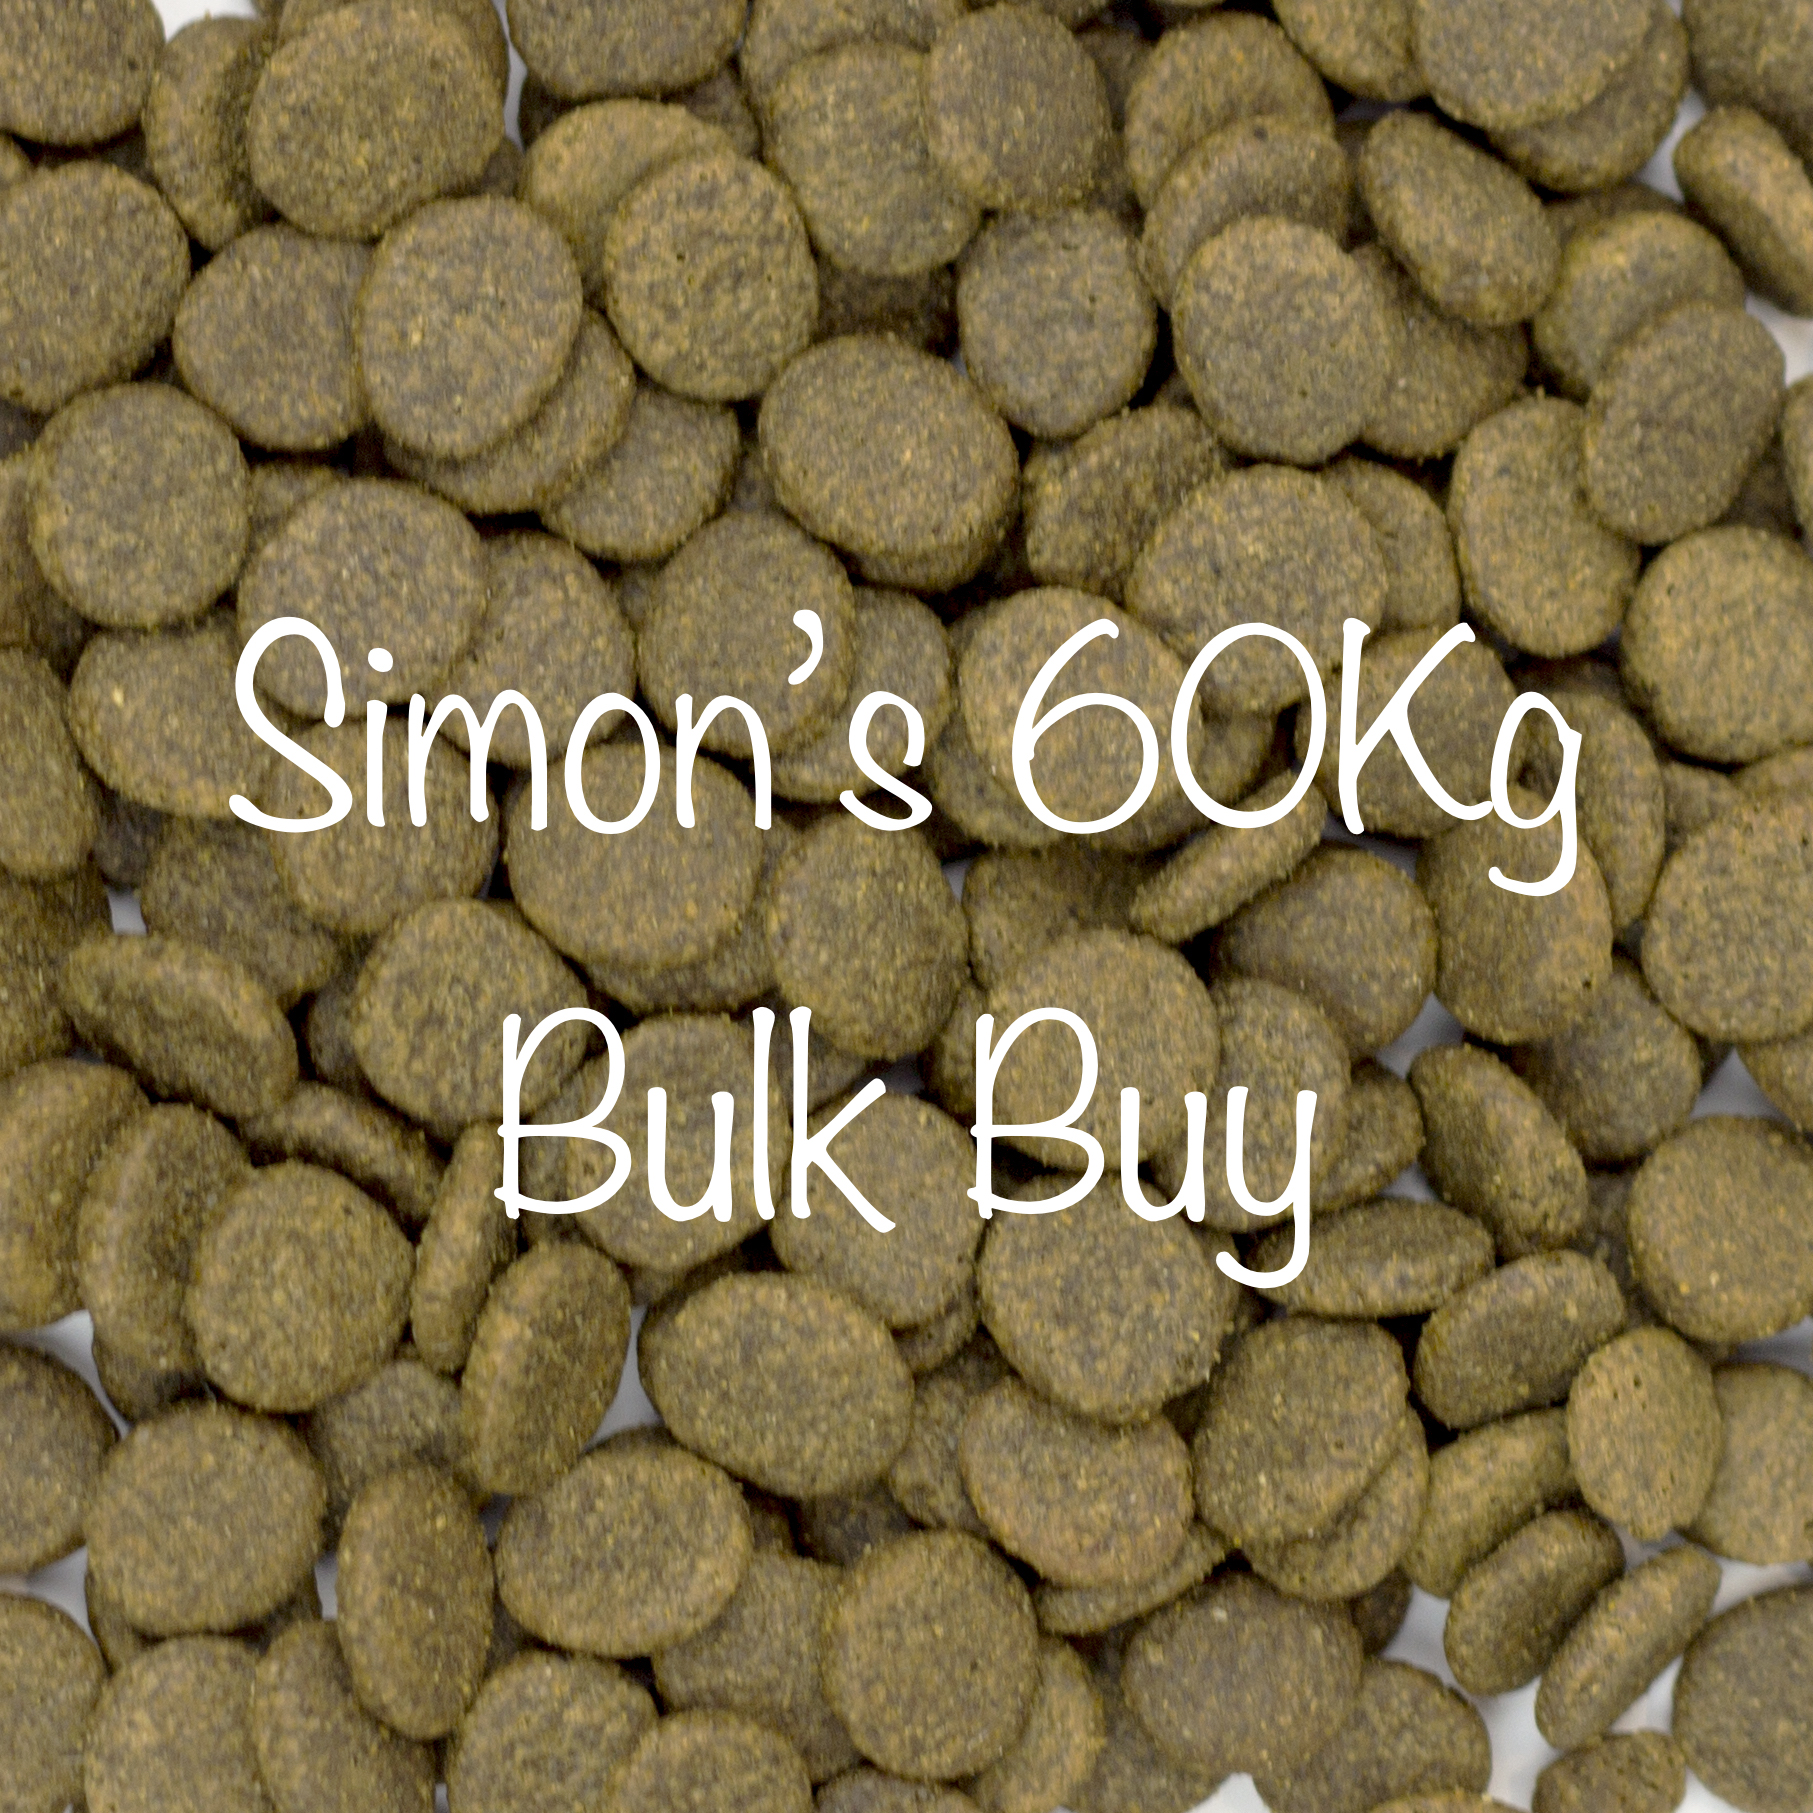 4 x 15Kg Bags of Simon's Dinner